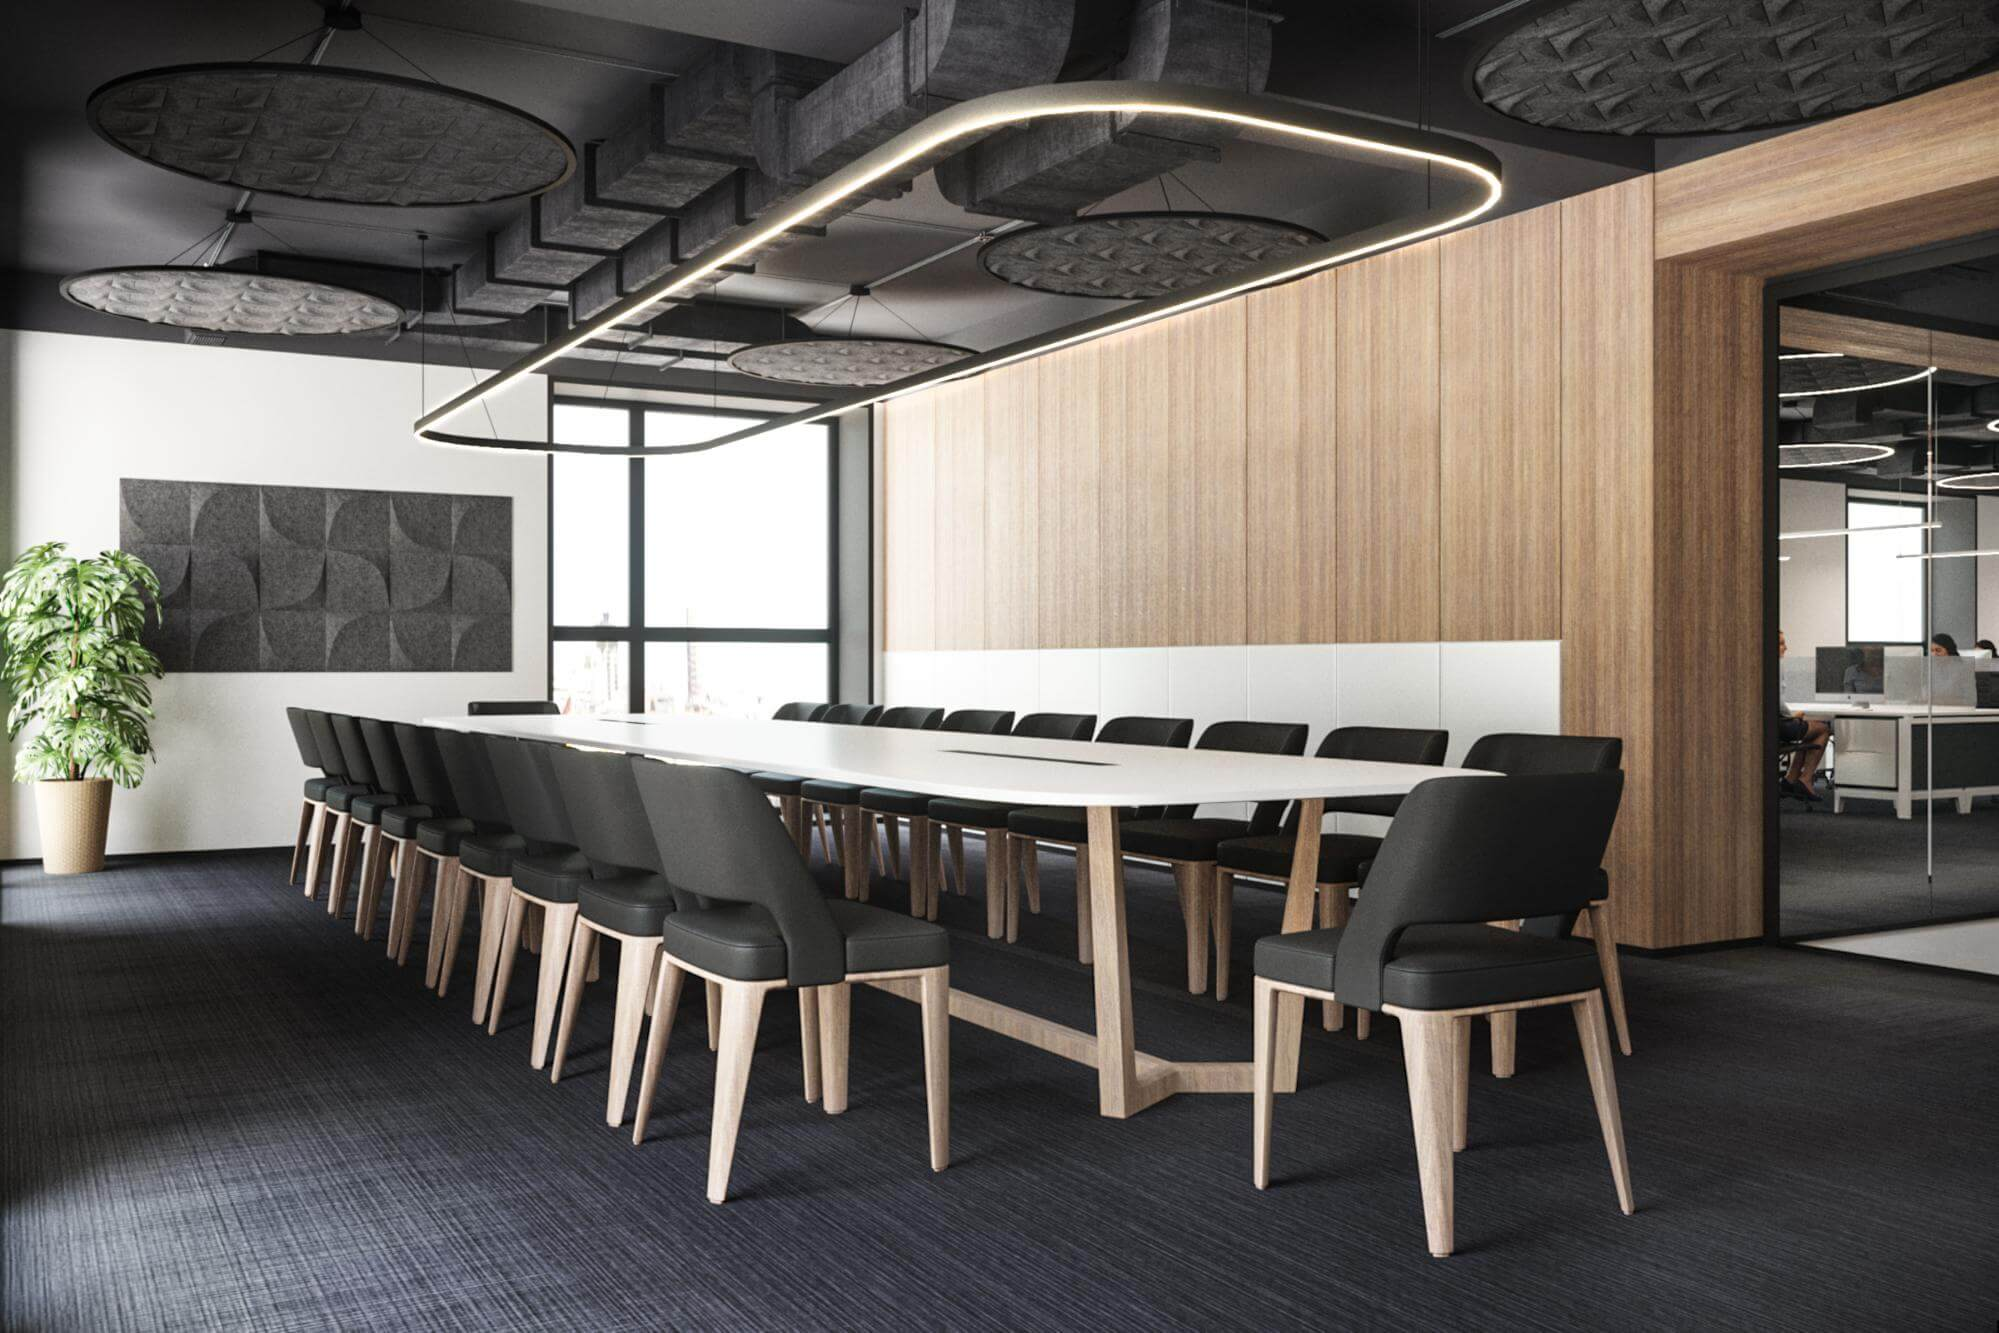 OPEN modern office design SPACE and acoustics 5